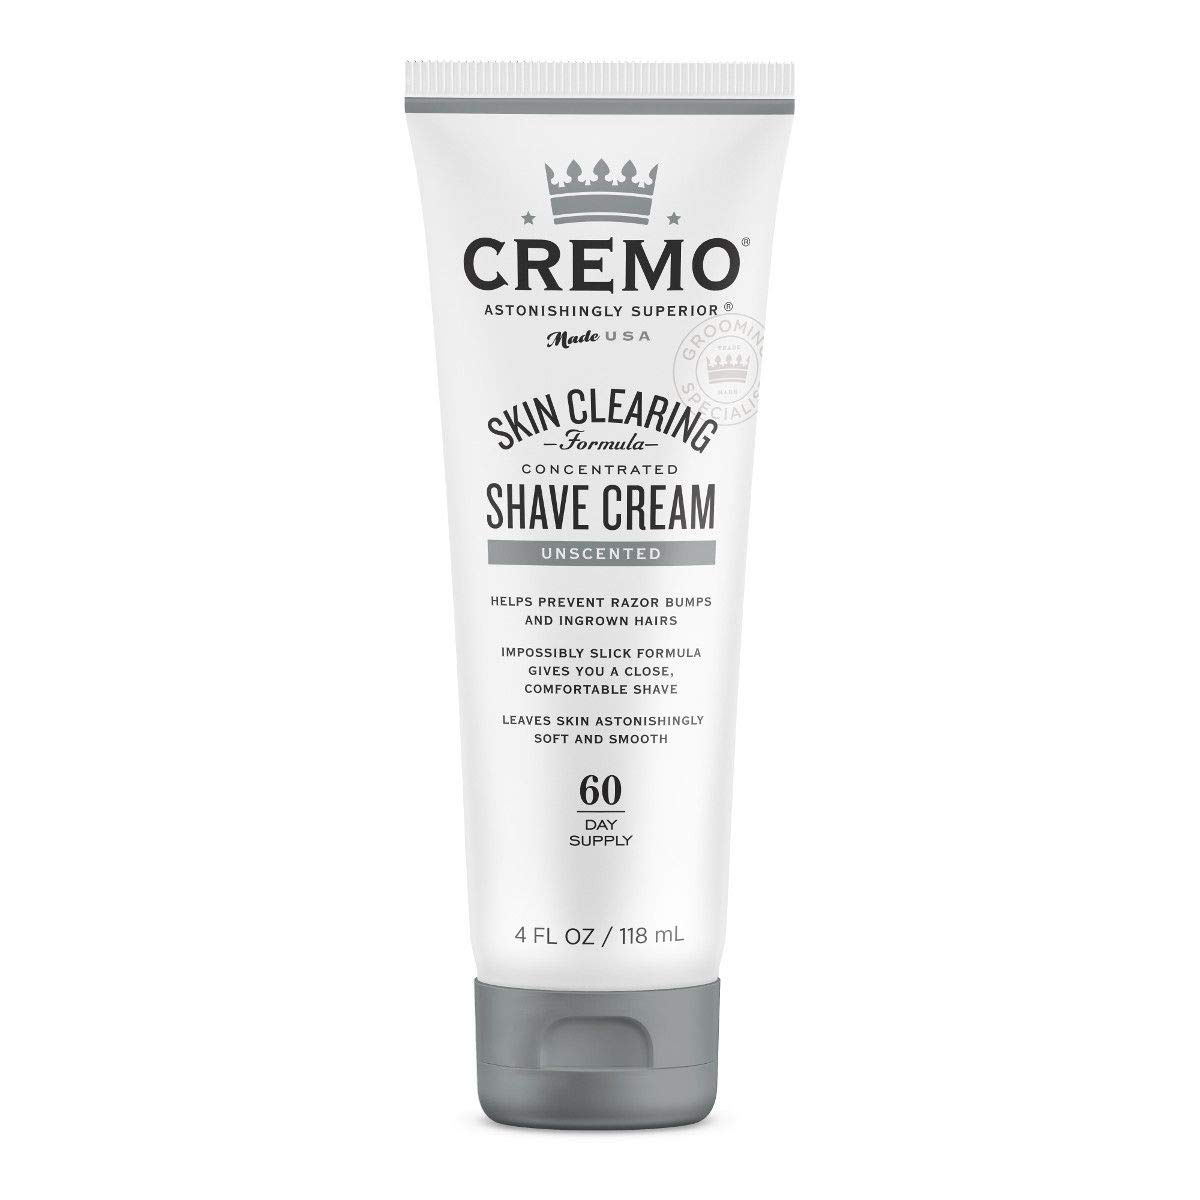 Cremo Unscented Shave Cream With Skin Clearing Formula, Helps Prevent Razor Bumps, Blemishes and Ingrown Hairs, 4 Fluid Ounces